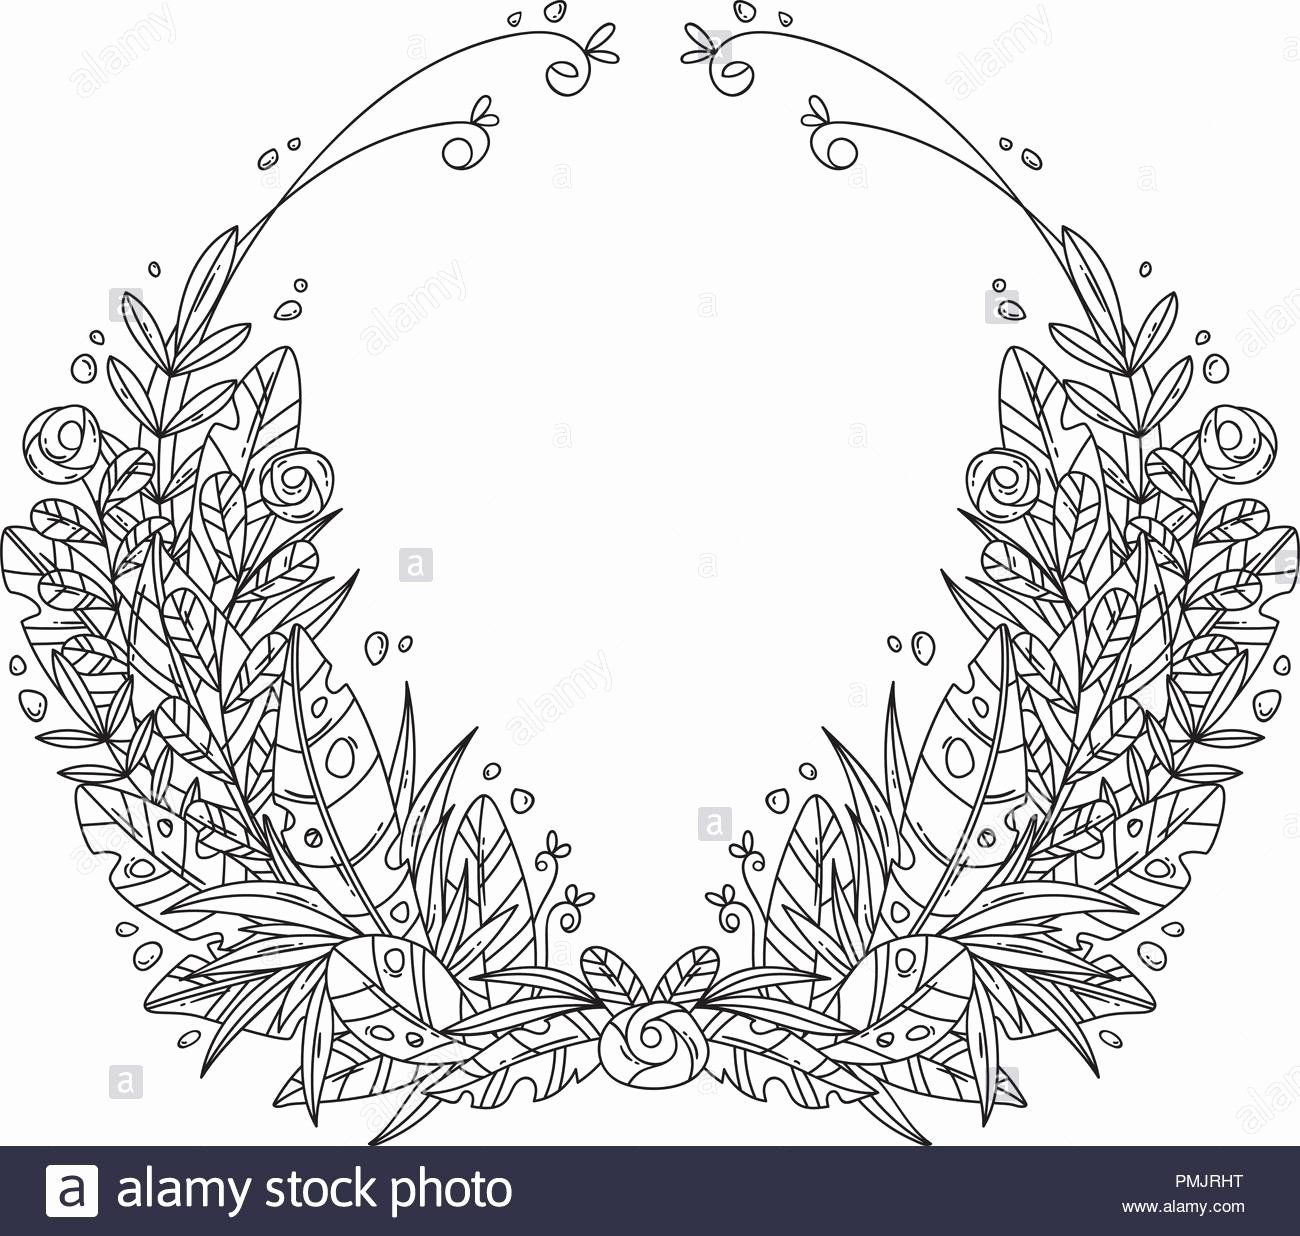 Flower Wreath Coloring Page In 2020 Christmas Coloring Pages